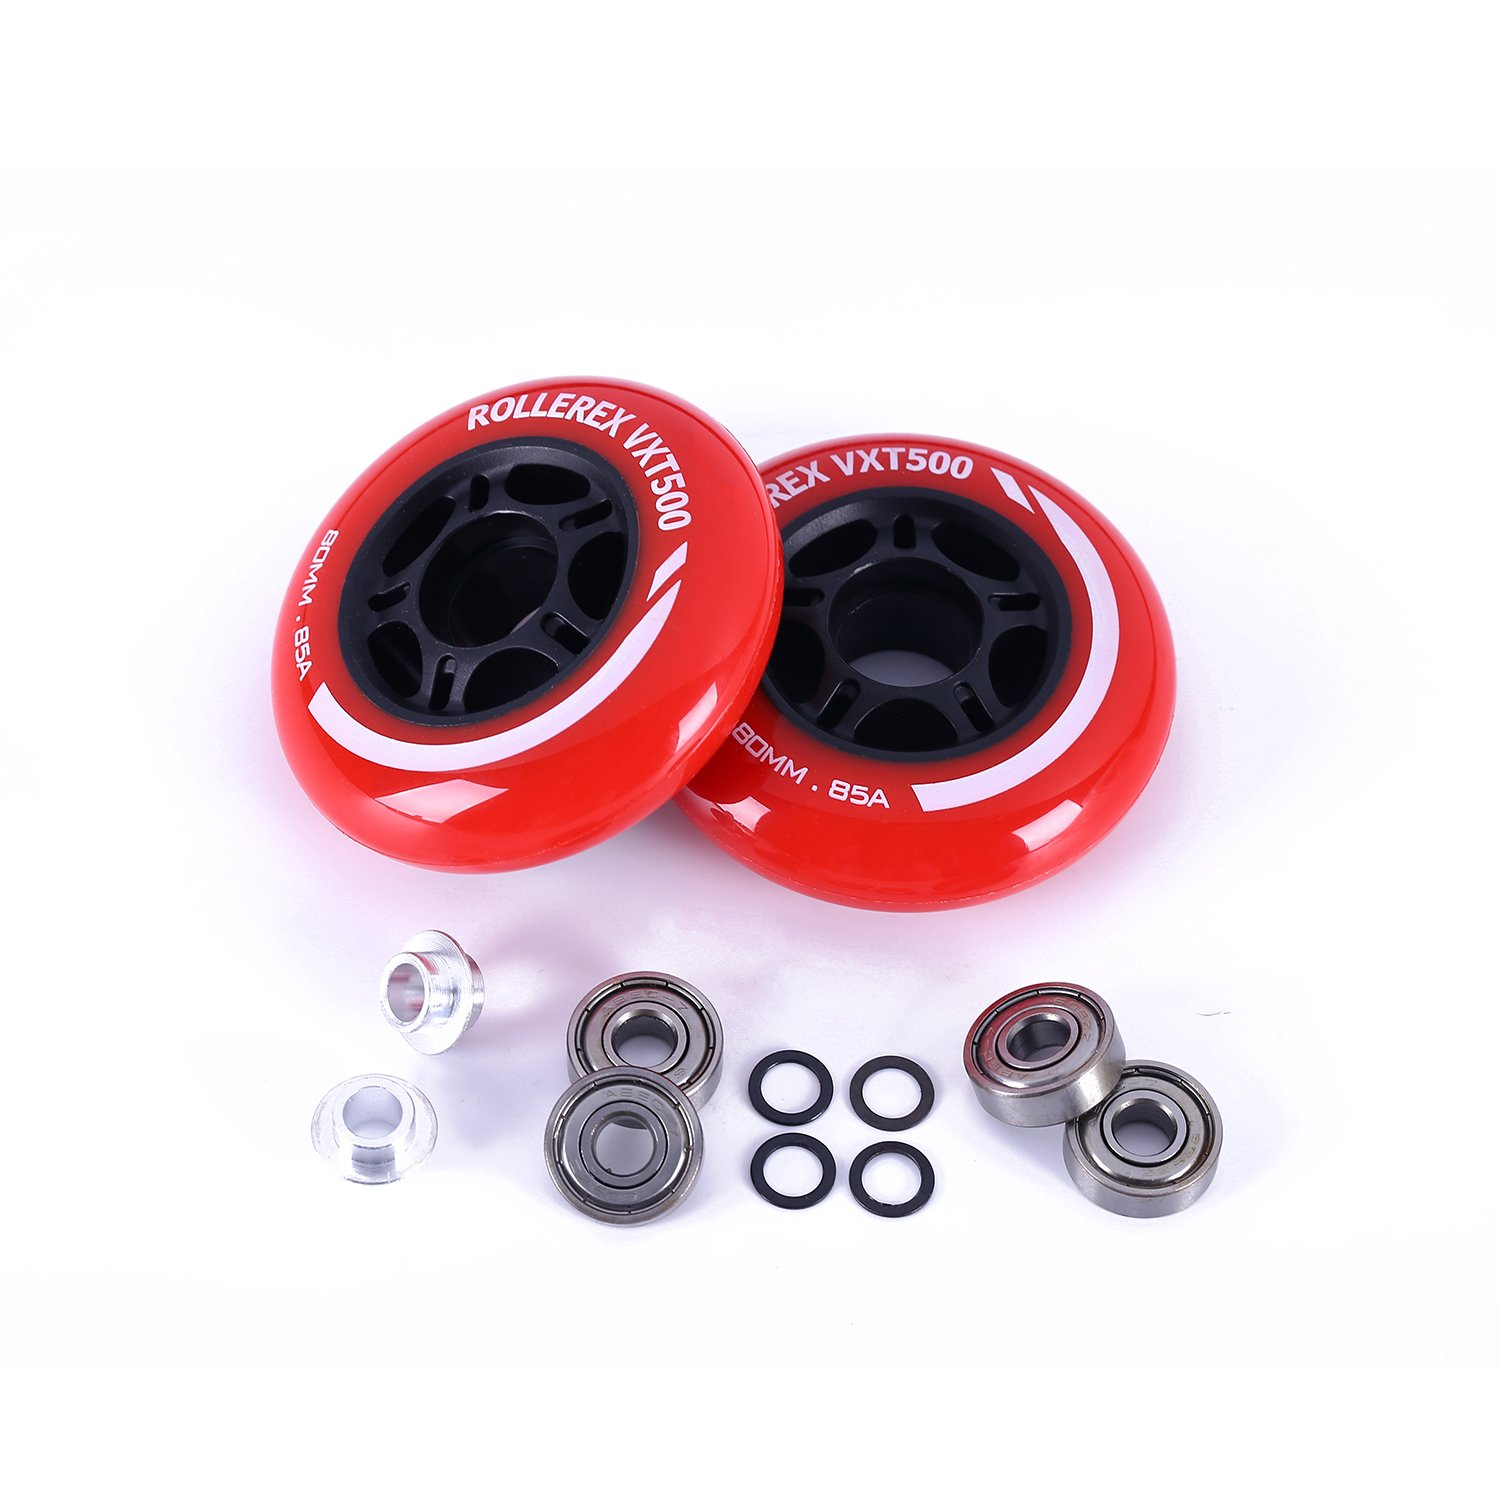 Rollerex VXT500 Inline Skate Wheels (2-Pack w/Bearings, spacers and washers) (Rocket Red, 80mm) by Rollerex